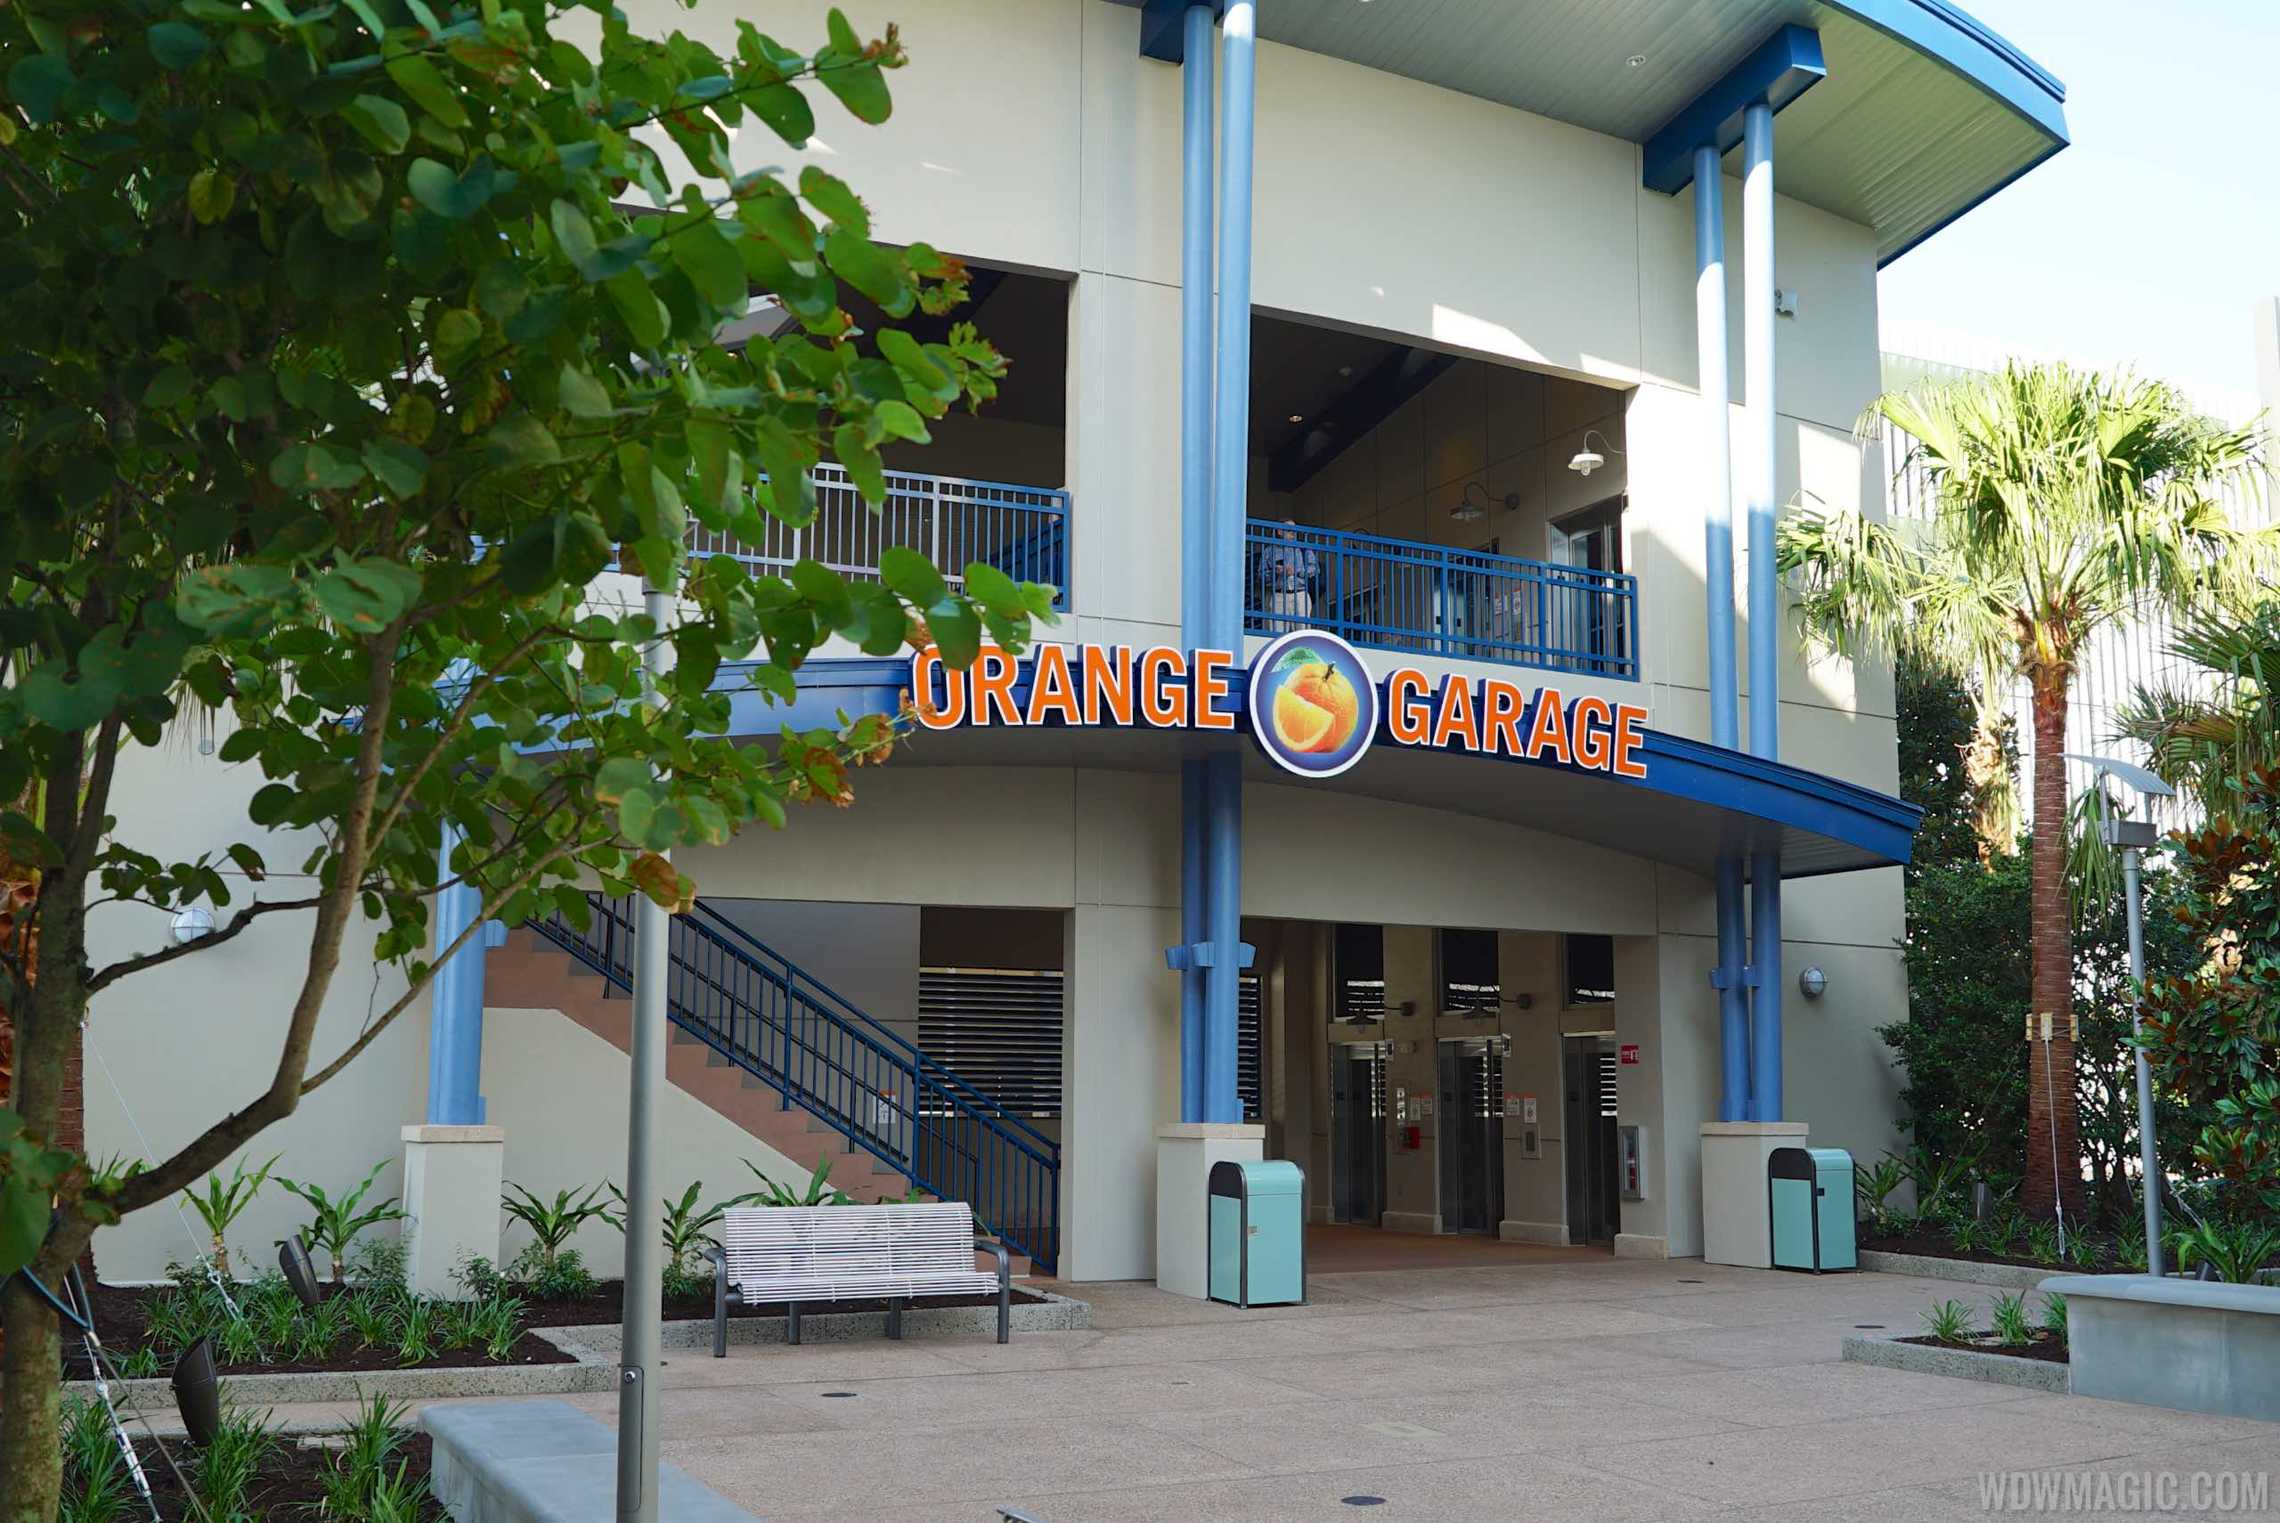 Disney Springs Orange Parking Garage east connector - Exterior ground level